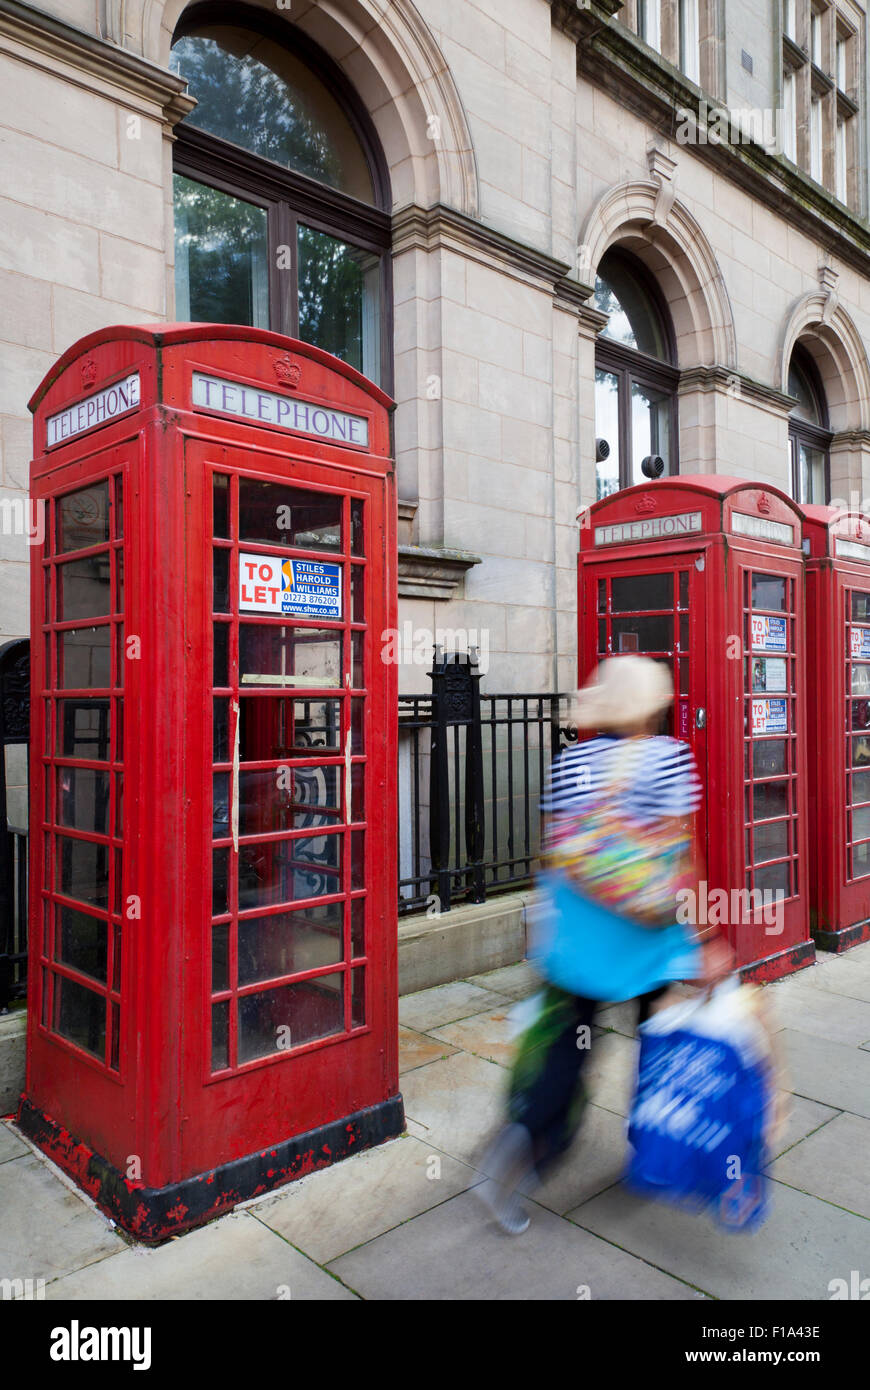 People passing K6 Old type GPO, or BT red Telephone Boxes advertised as being  'To Let' with various uses - Stock Image